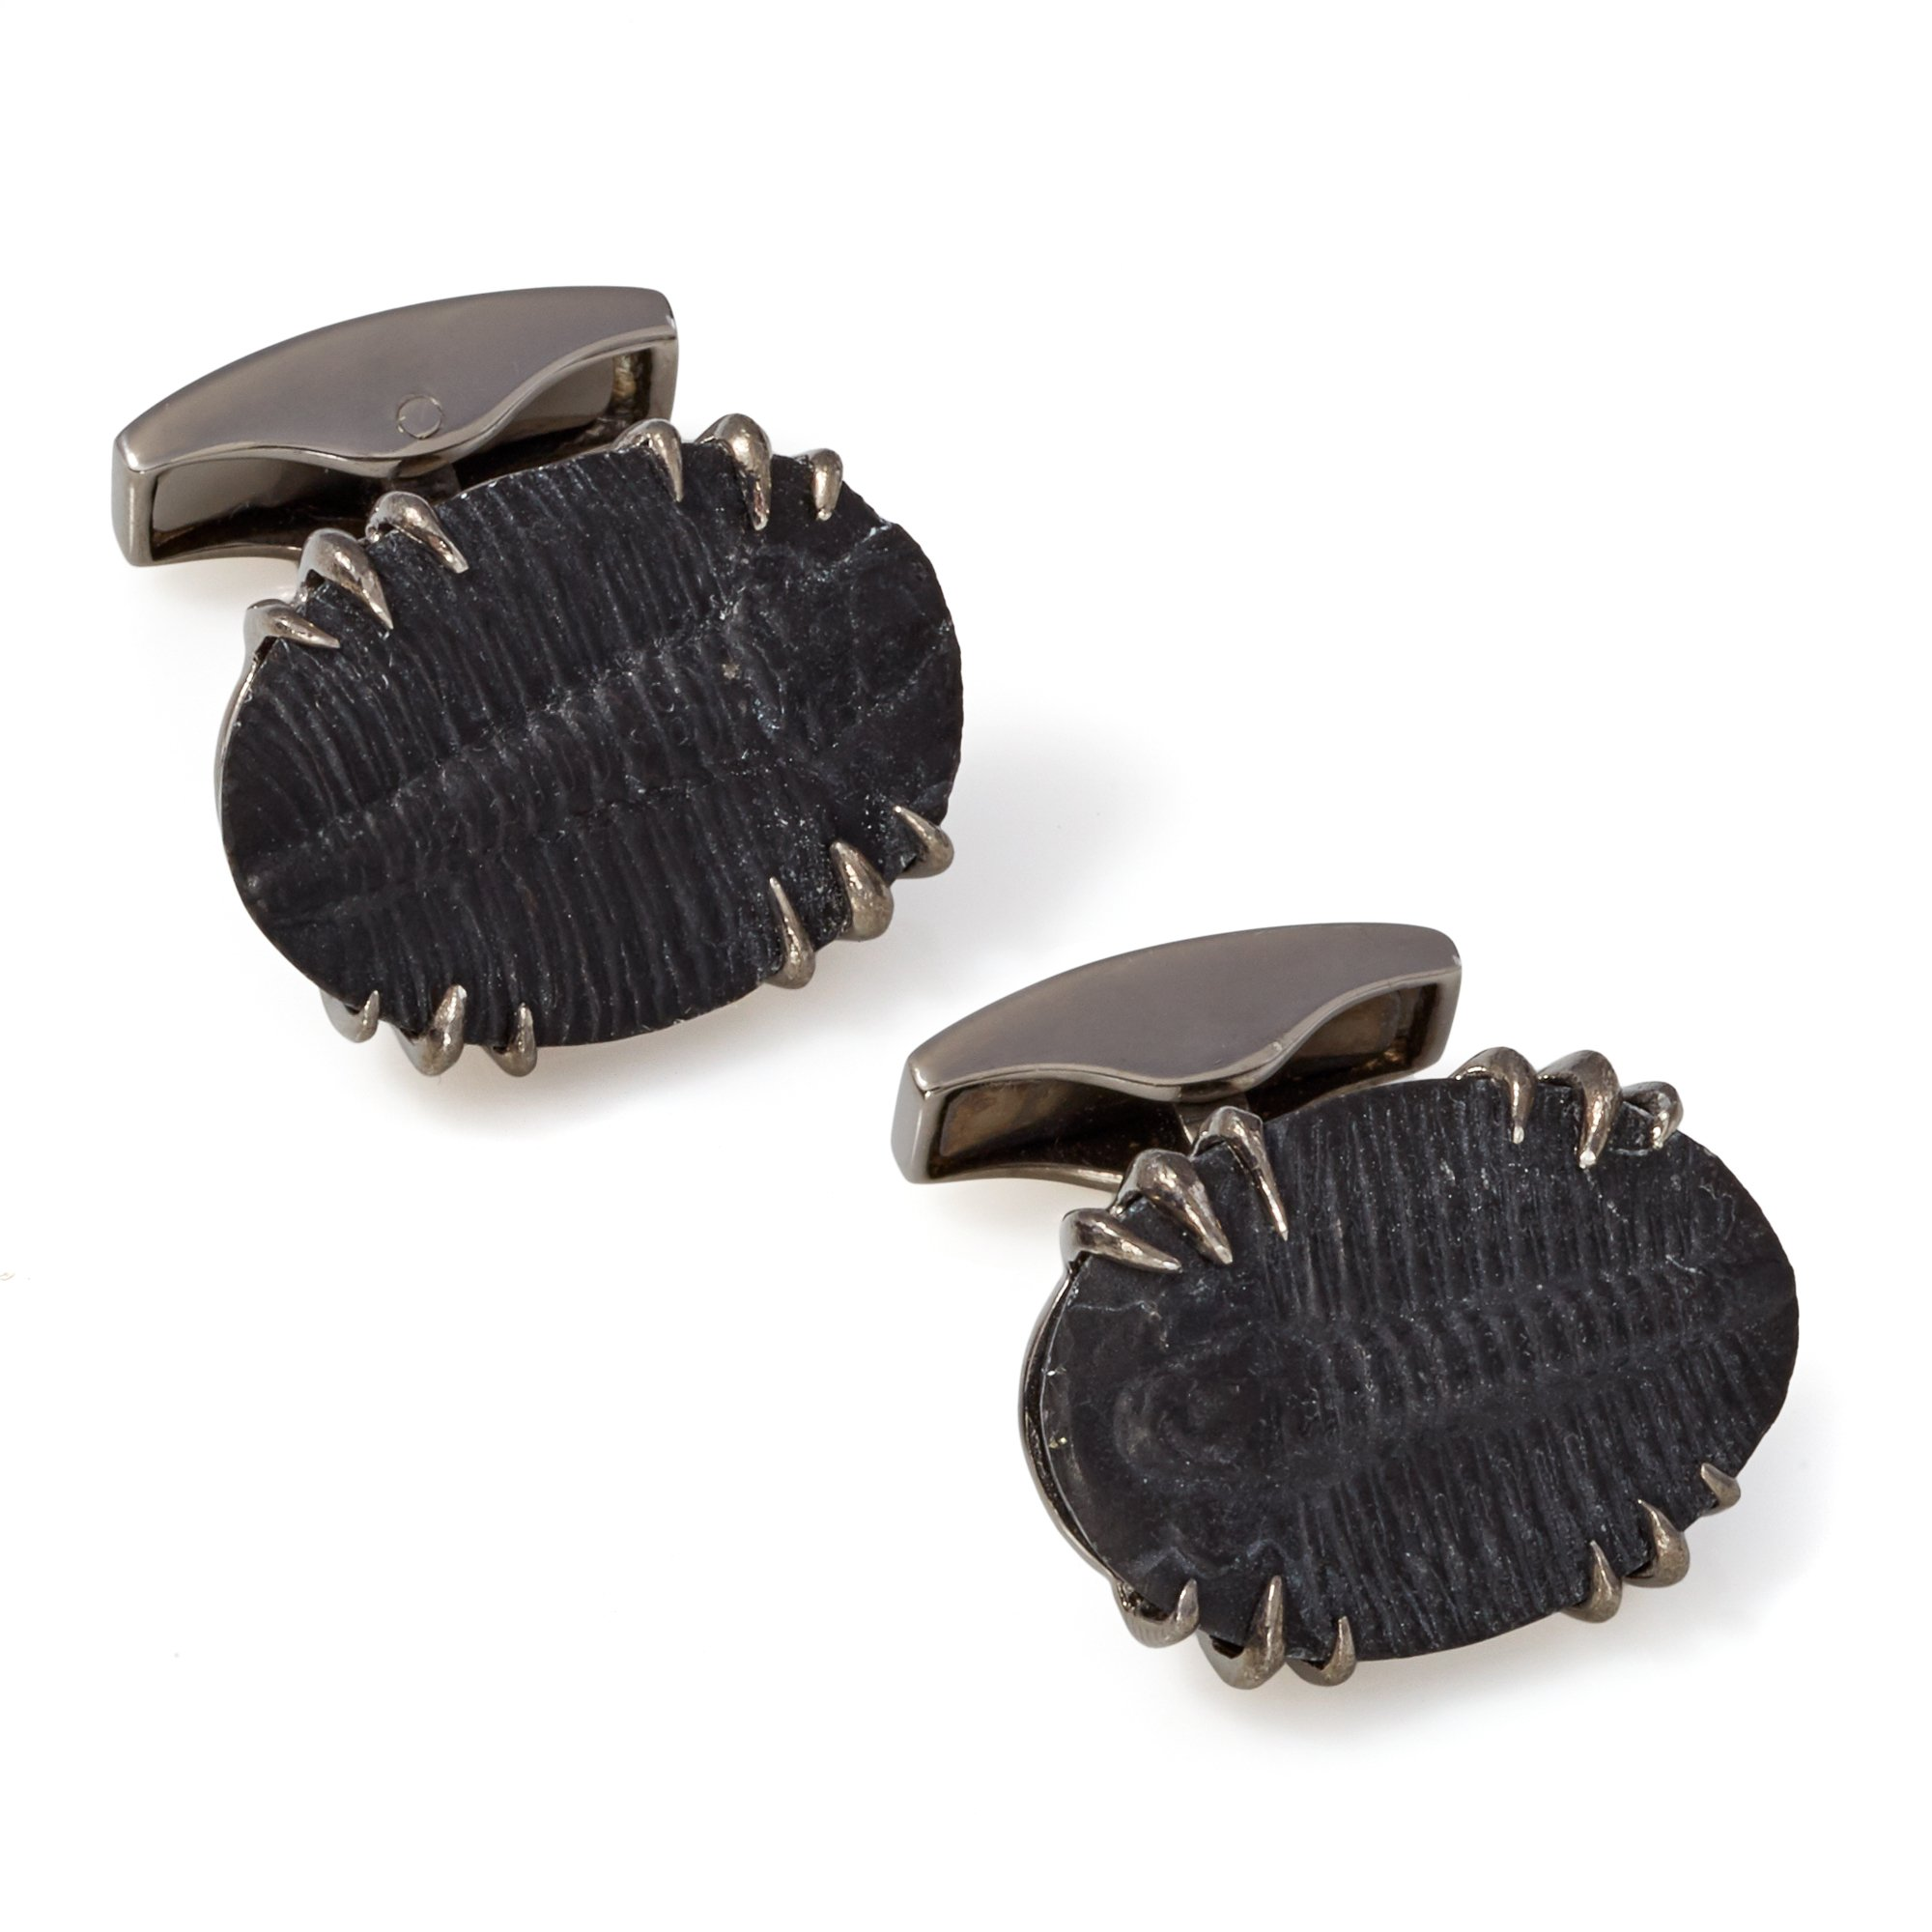 Tateossian Stones of the World Limited Edition Silver Fossil Coral Cufflinks